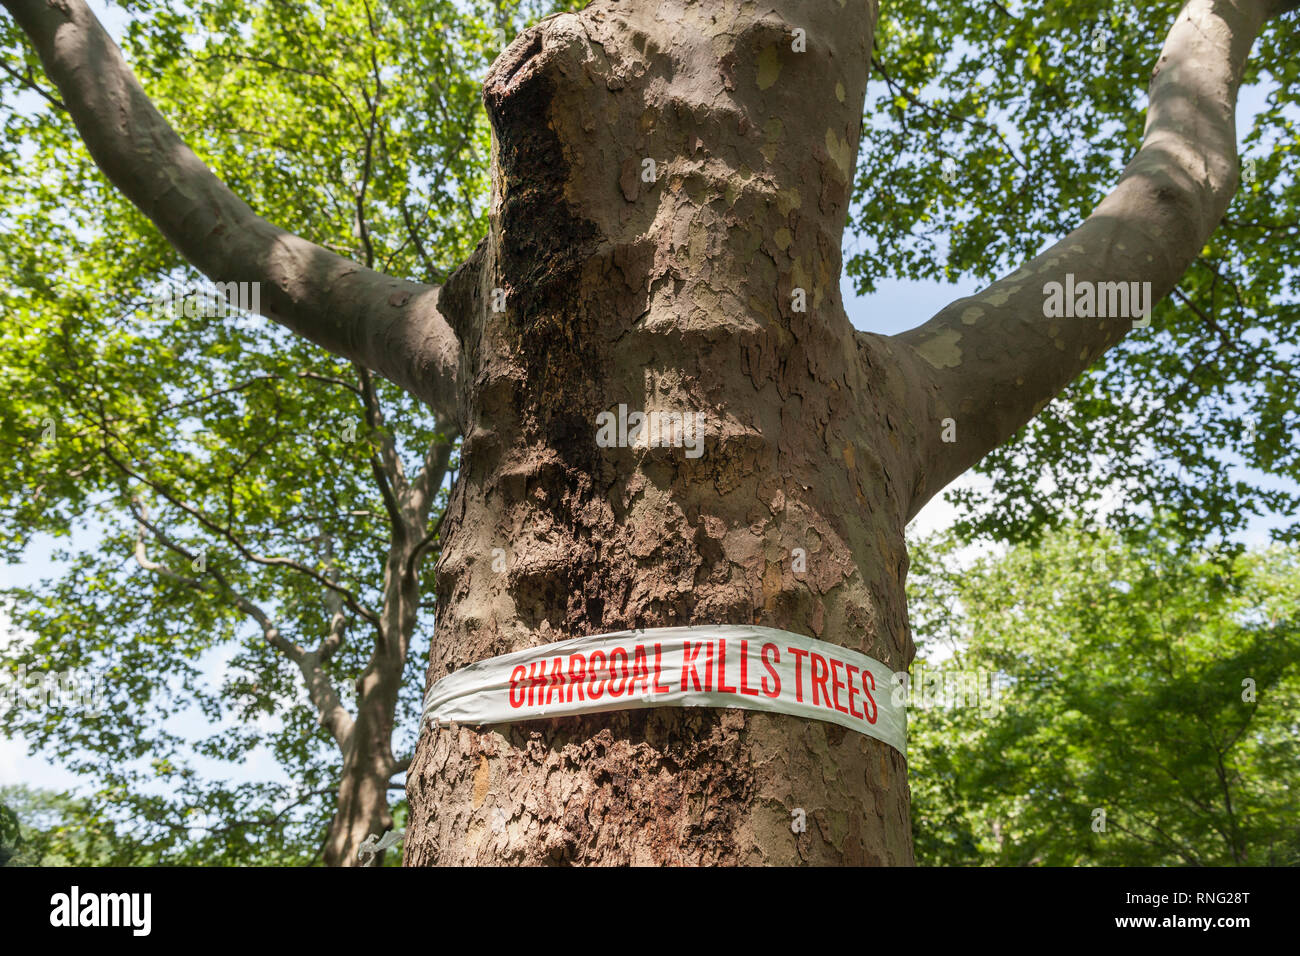 Warning sign to weekend picnickers not to dump their barbecue charcoal against the park tree in New York City, New York, USA. - Stock Image